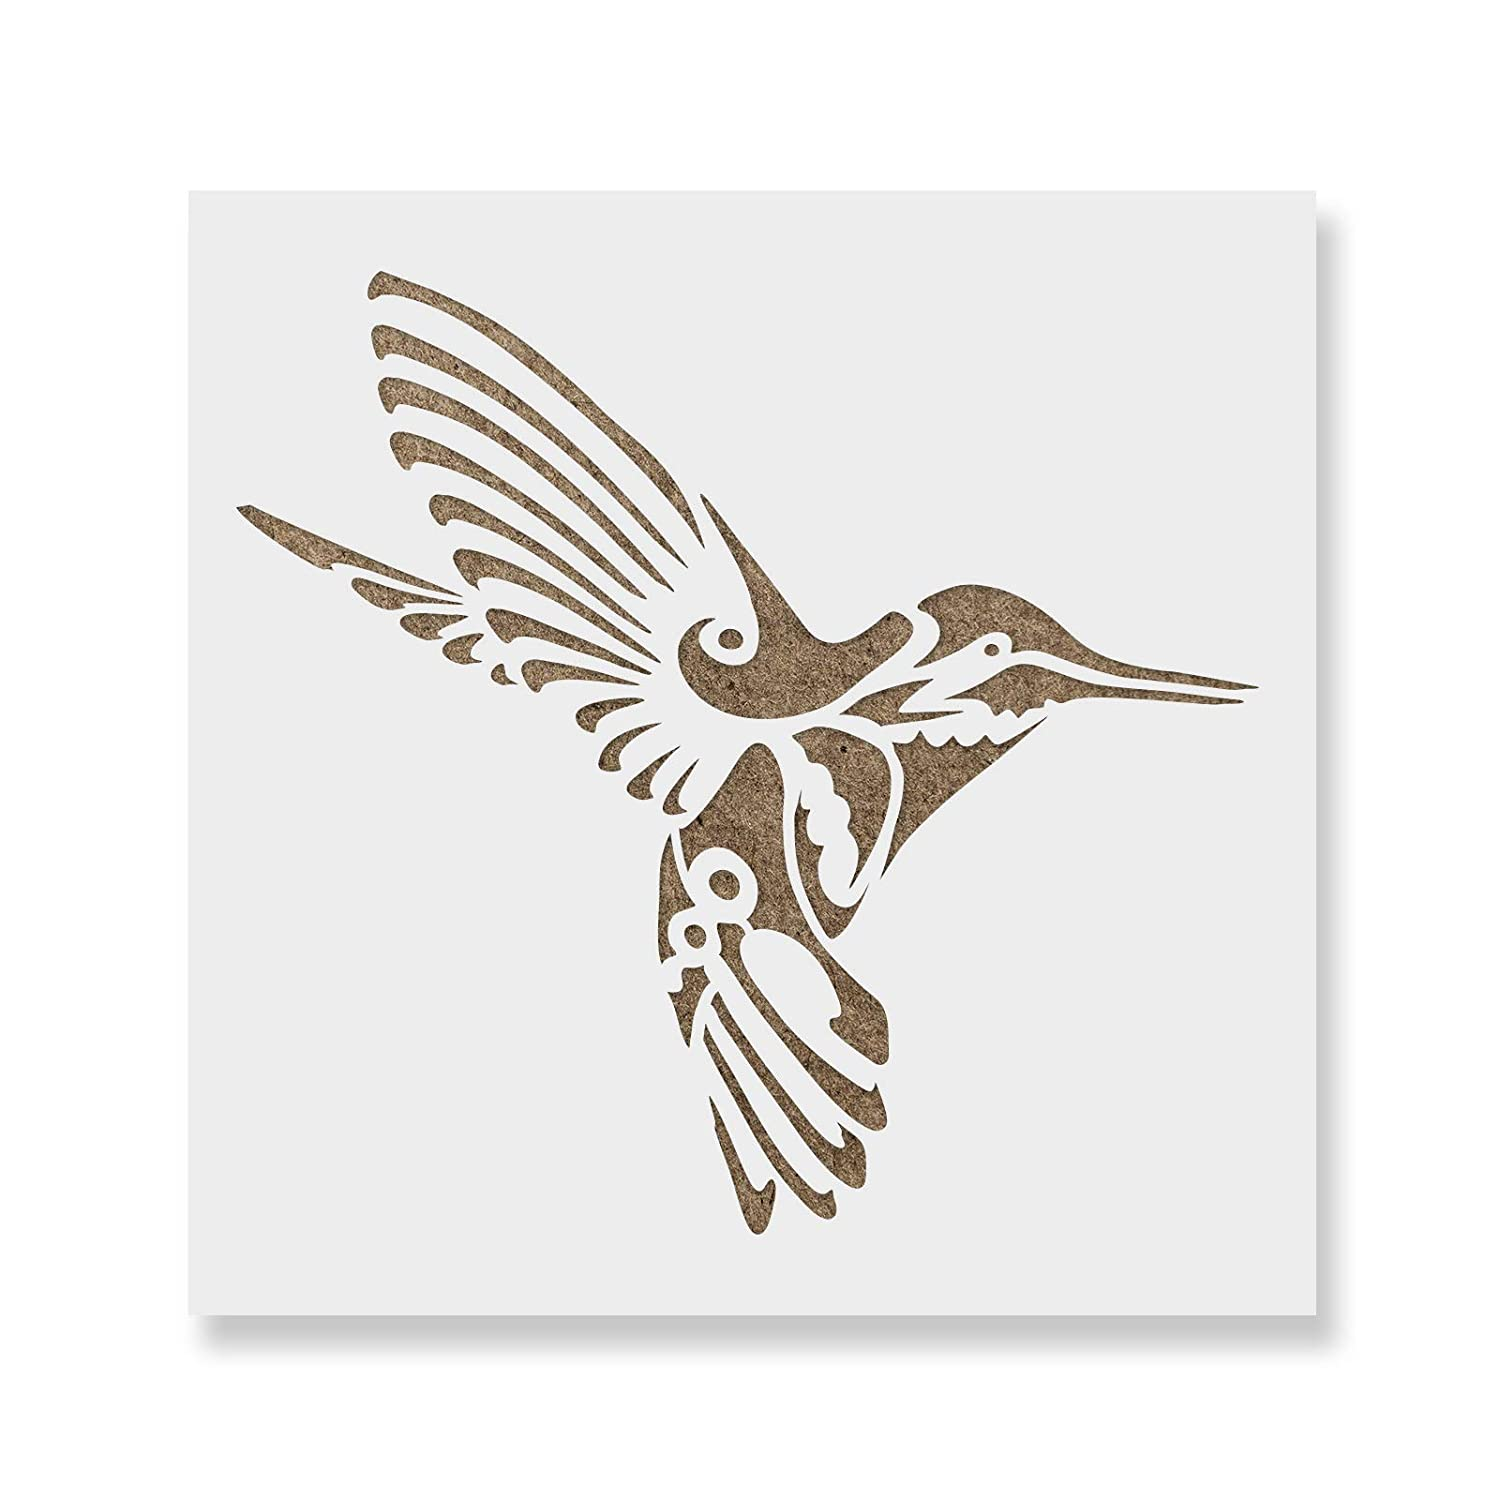 Hummingbird Deco Stencil Template for Walls and Crafts - Reusable Stencils for Painting in Small & Large Sizes Stencil Revolution